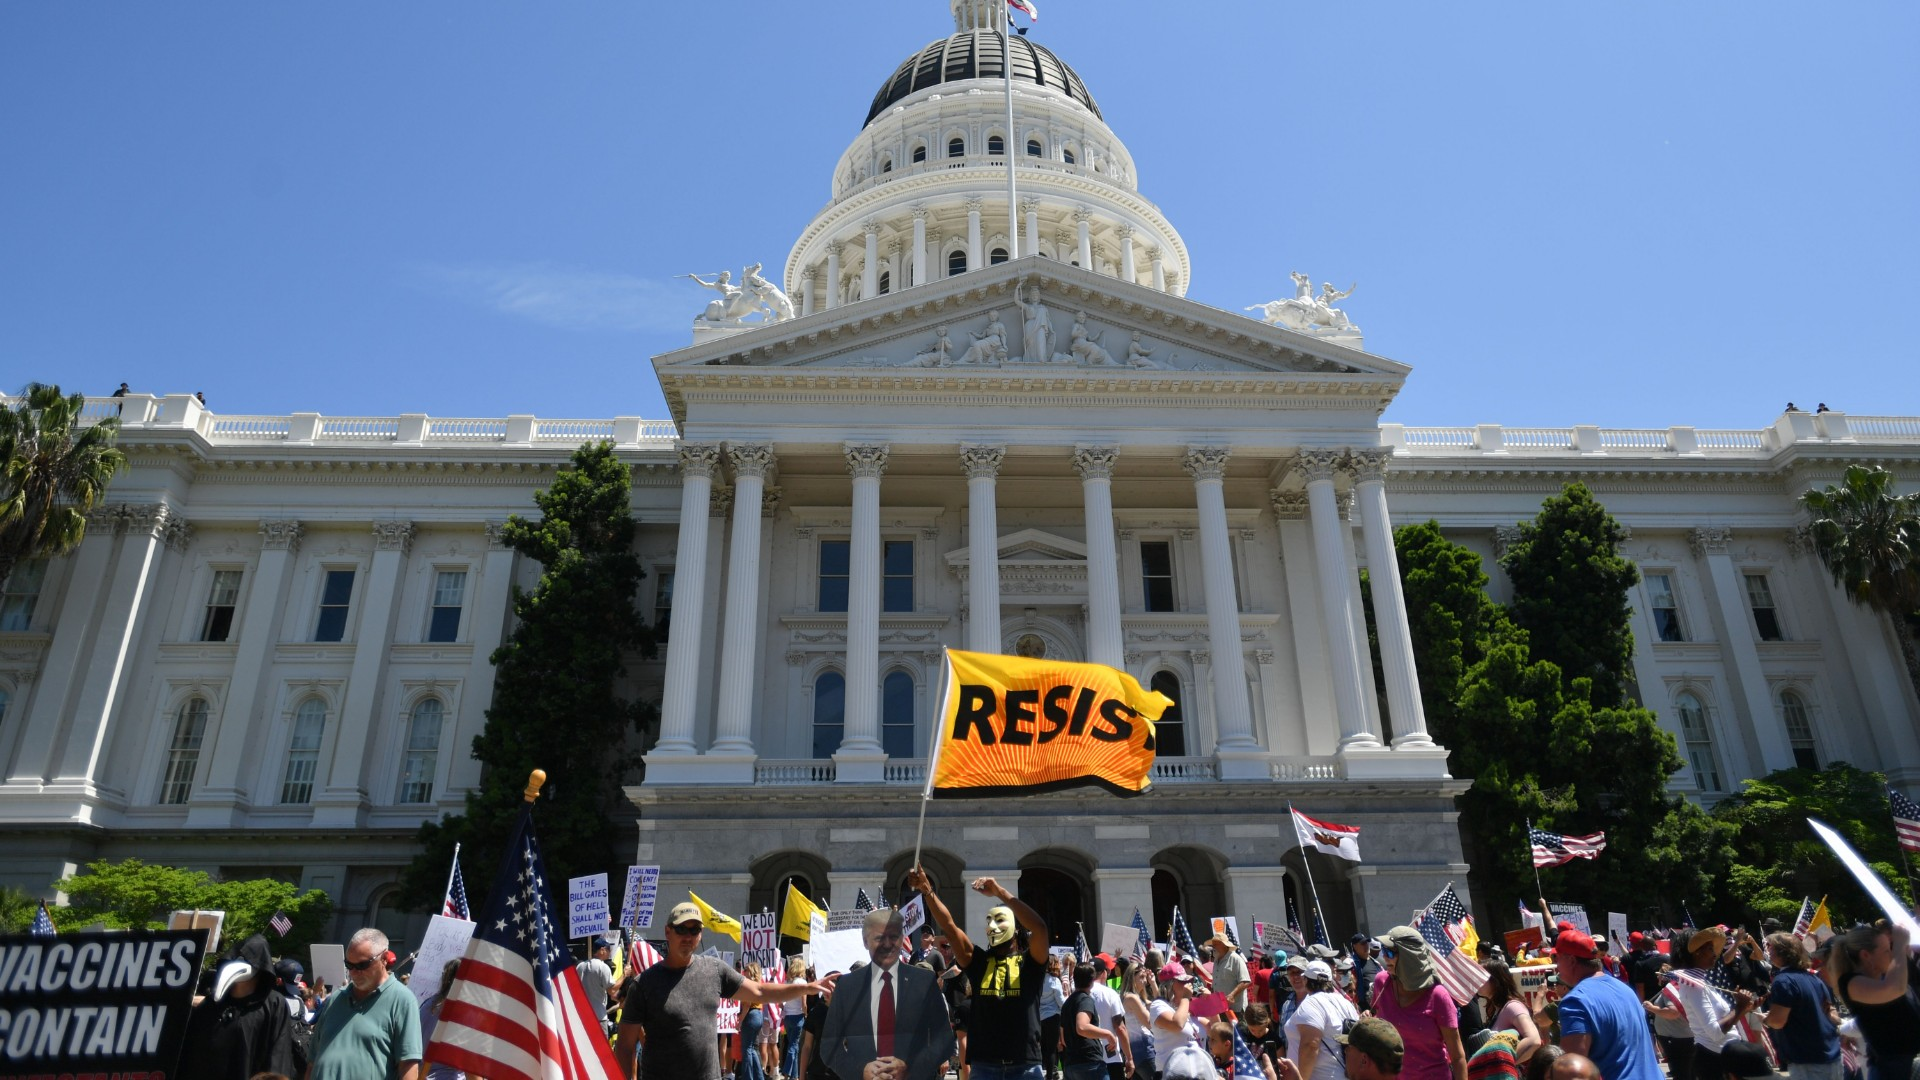 Hundreds gather to protest the shelter-in-place rules in effect amid the novel coronavirus pandemic at California's state capitol building in Sacramento, California on May 1, 2020. (Josh Edelson/AFP/Getty Images)